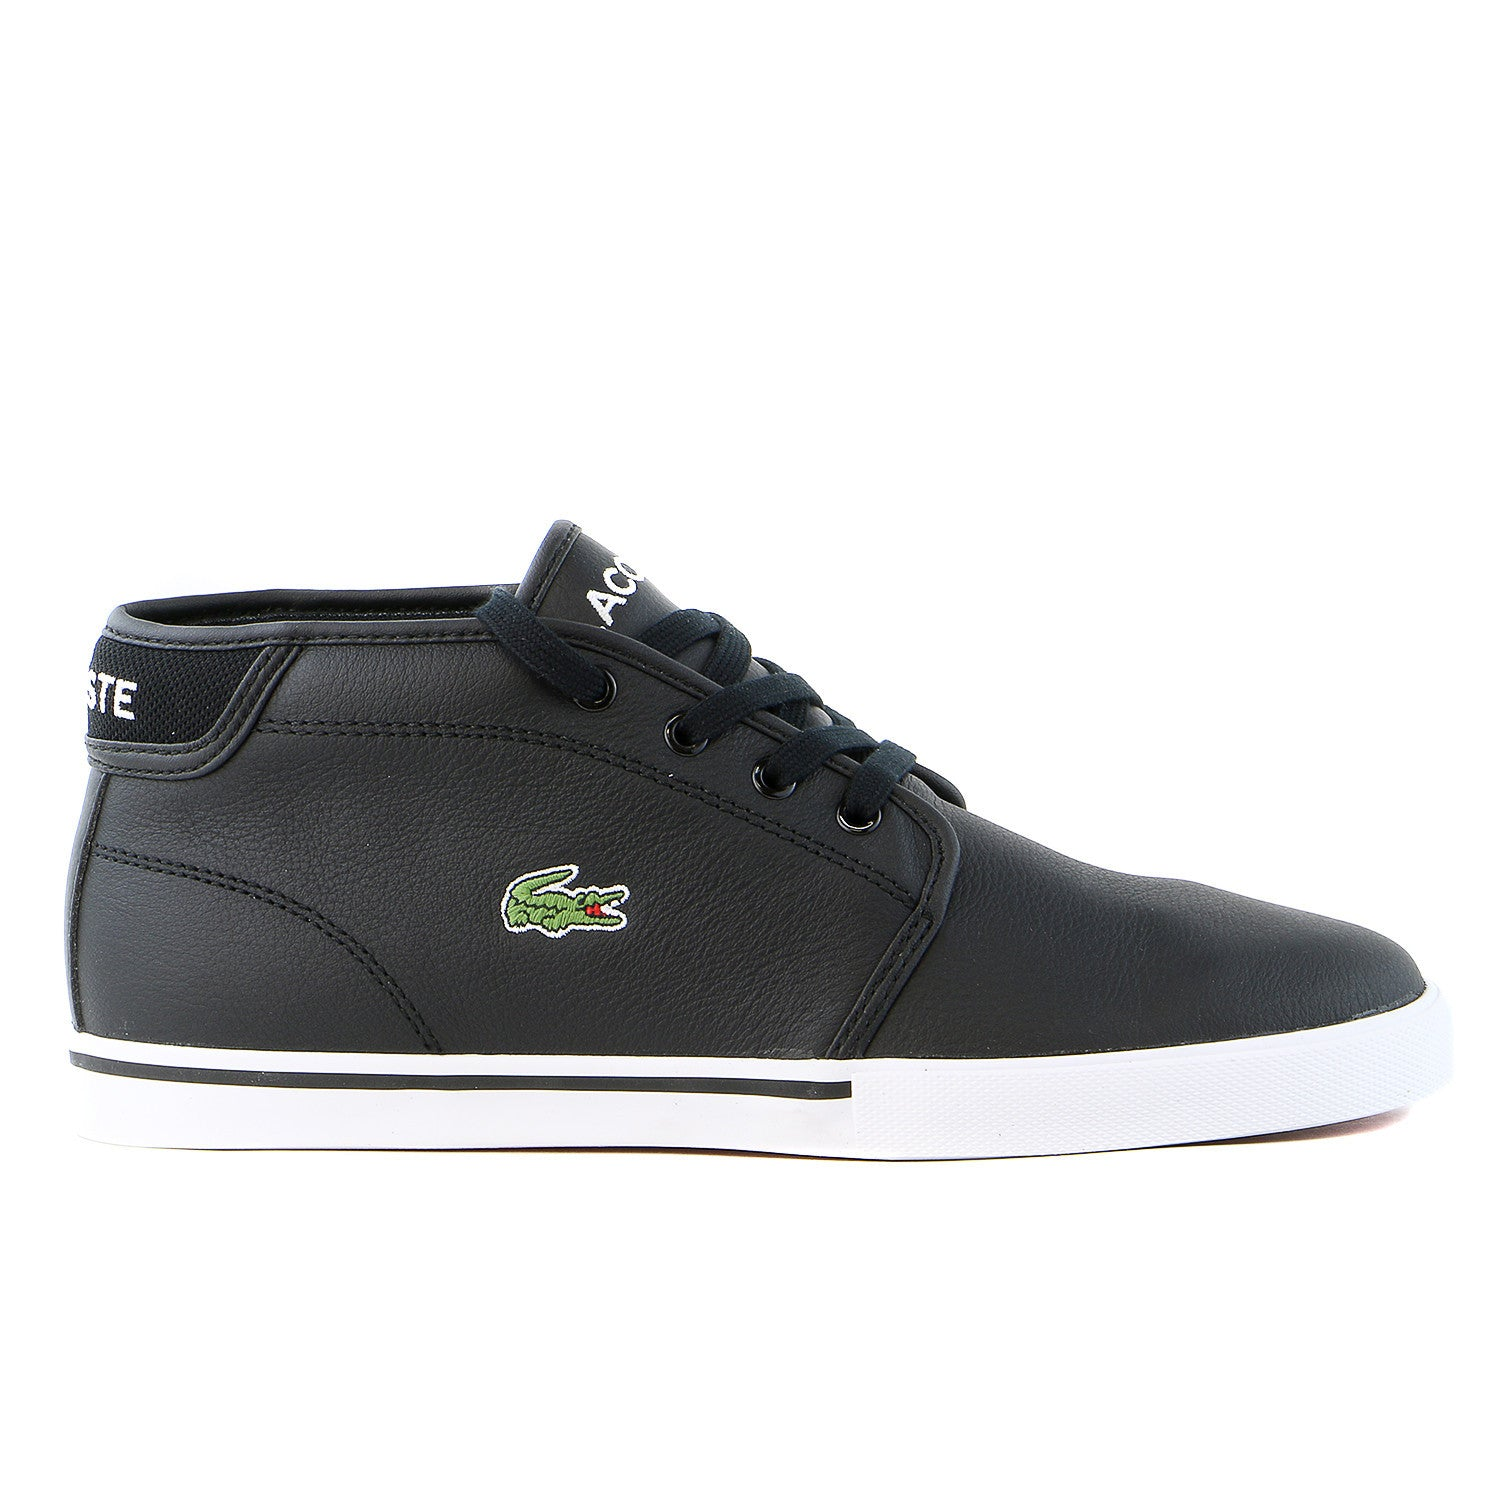 53bad168bf66 Lacoste Ampthill LCR Mid Fashion Sneaker Shoe - Black - Mens - Shoplifestyle